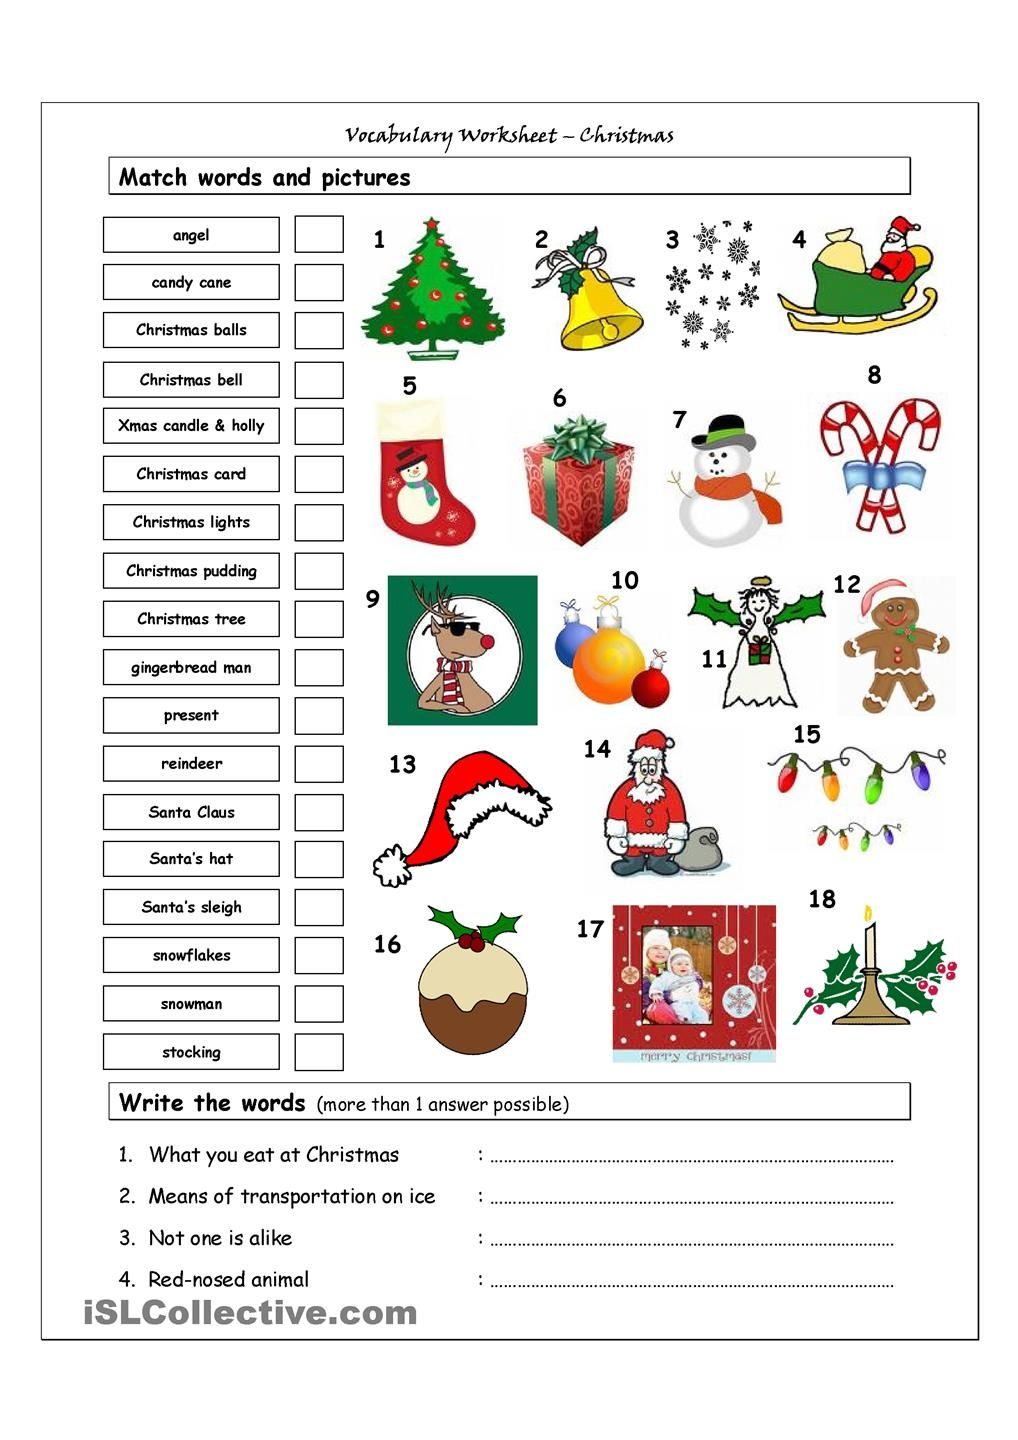 Vocabulary Matching Worksheet Xmas CHRISTMAS – Christmas Worksheet